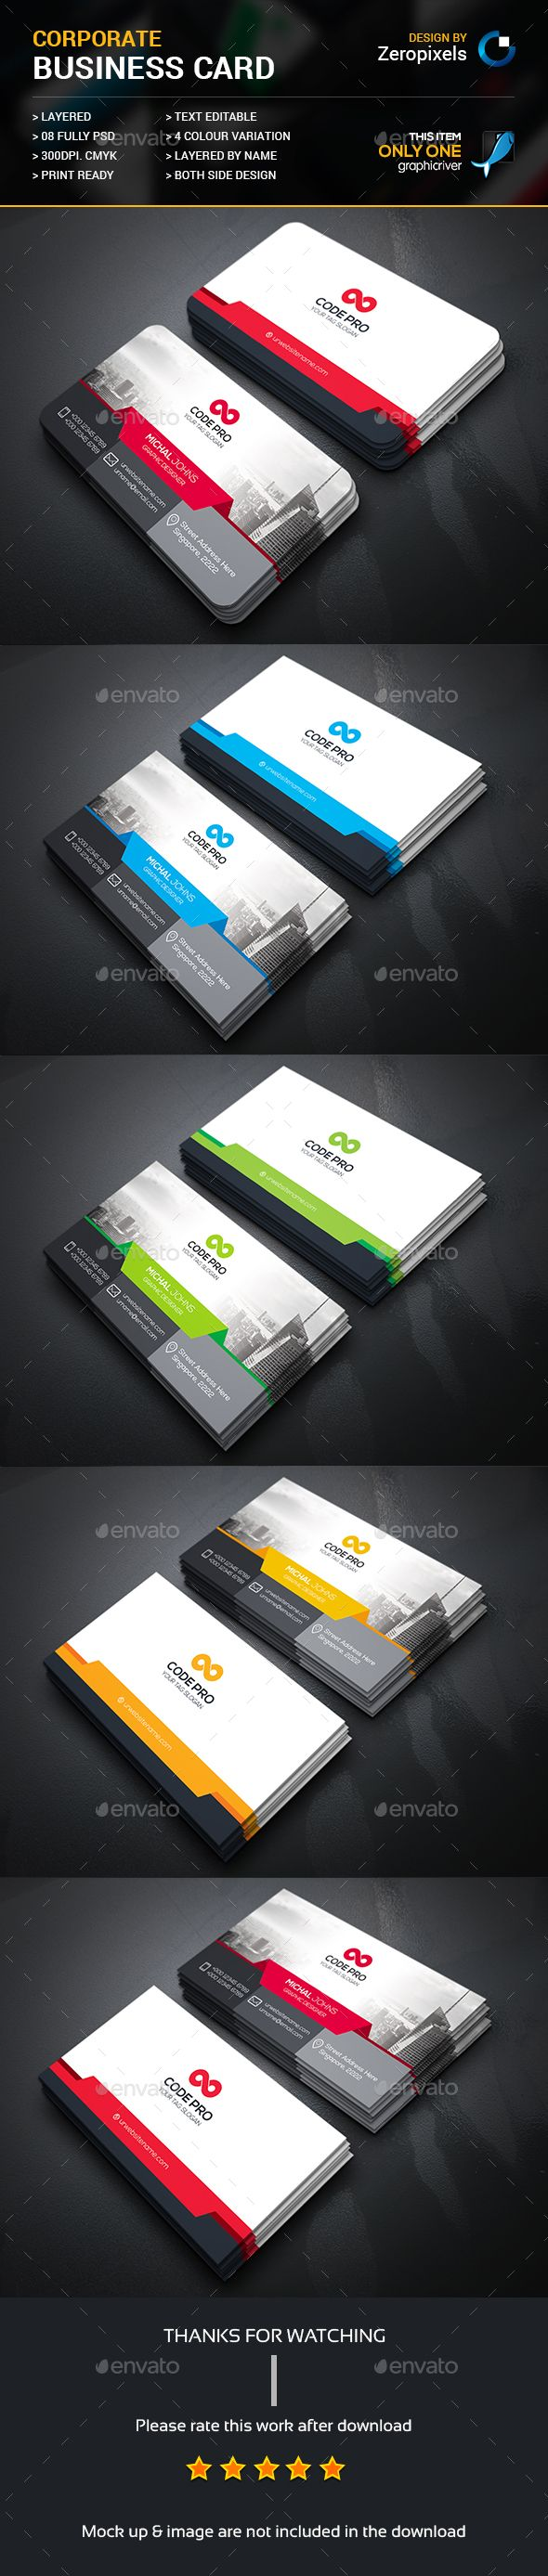 363 Best Design Business Card Formal Images On Pinterest